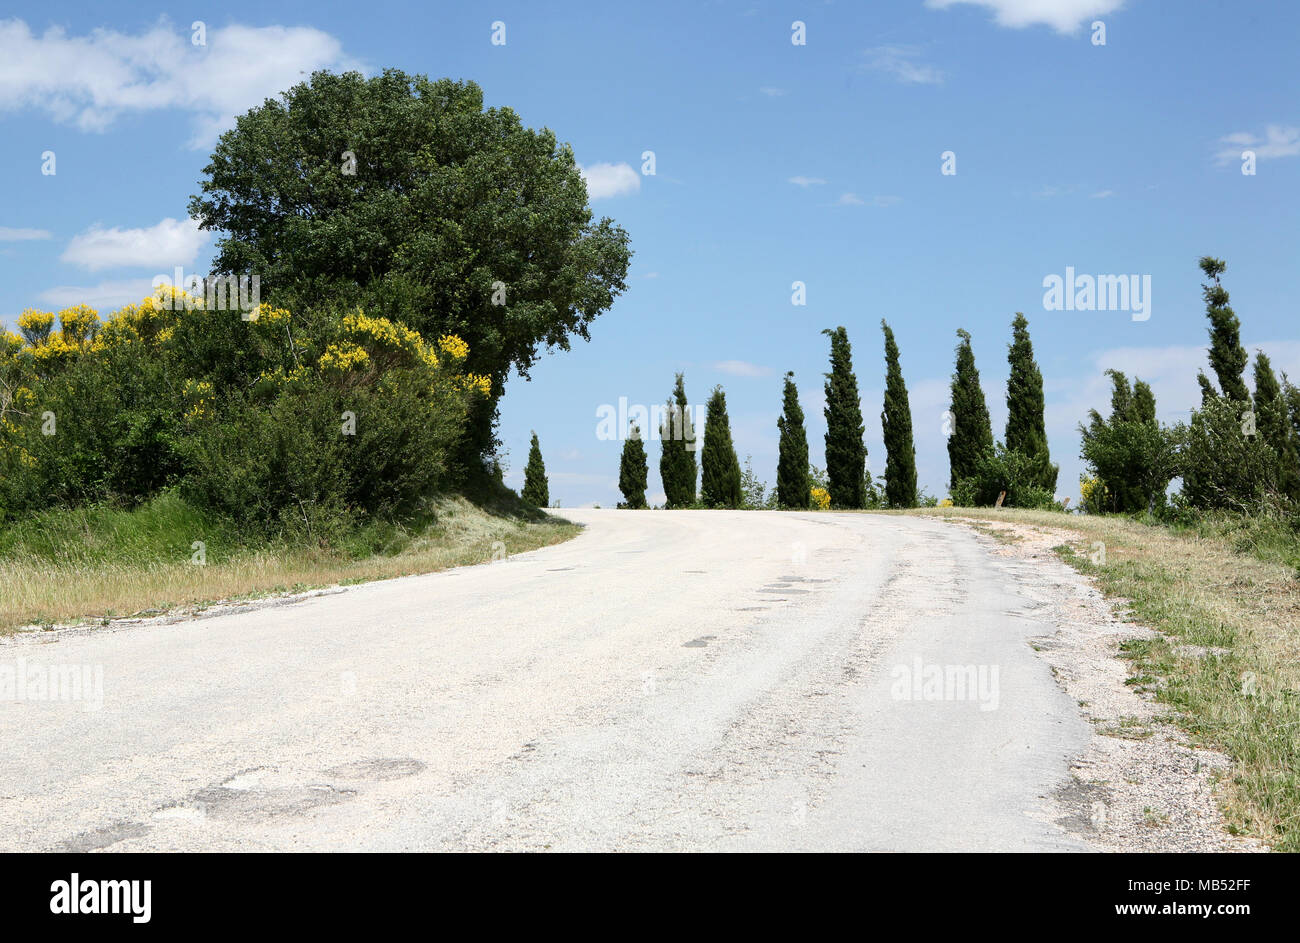 Small mountain road with cypress trees - Stock Image